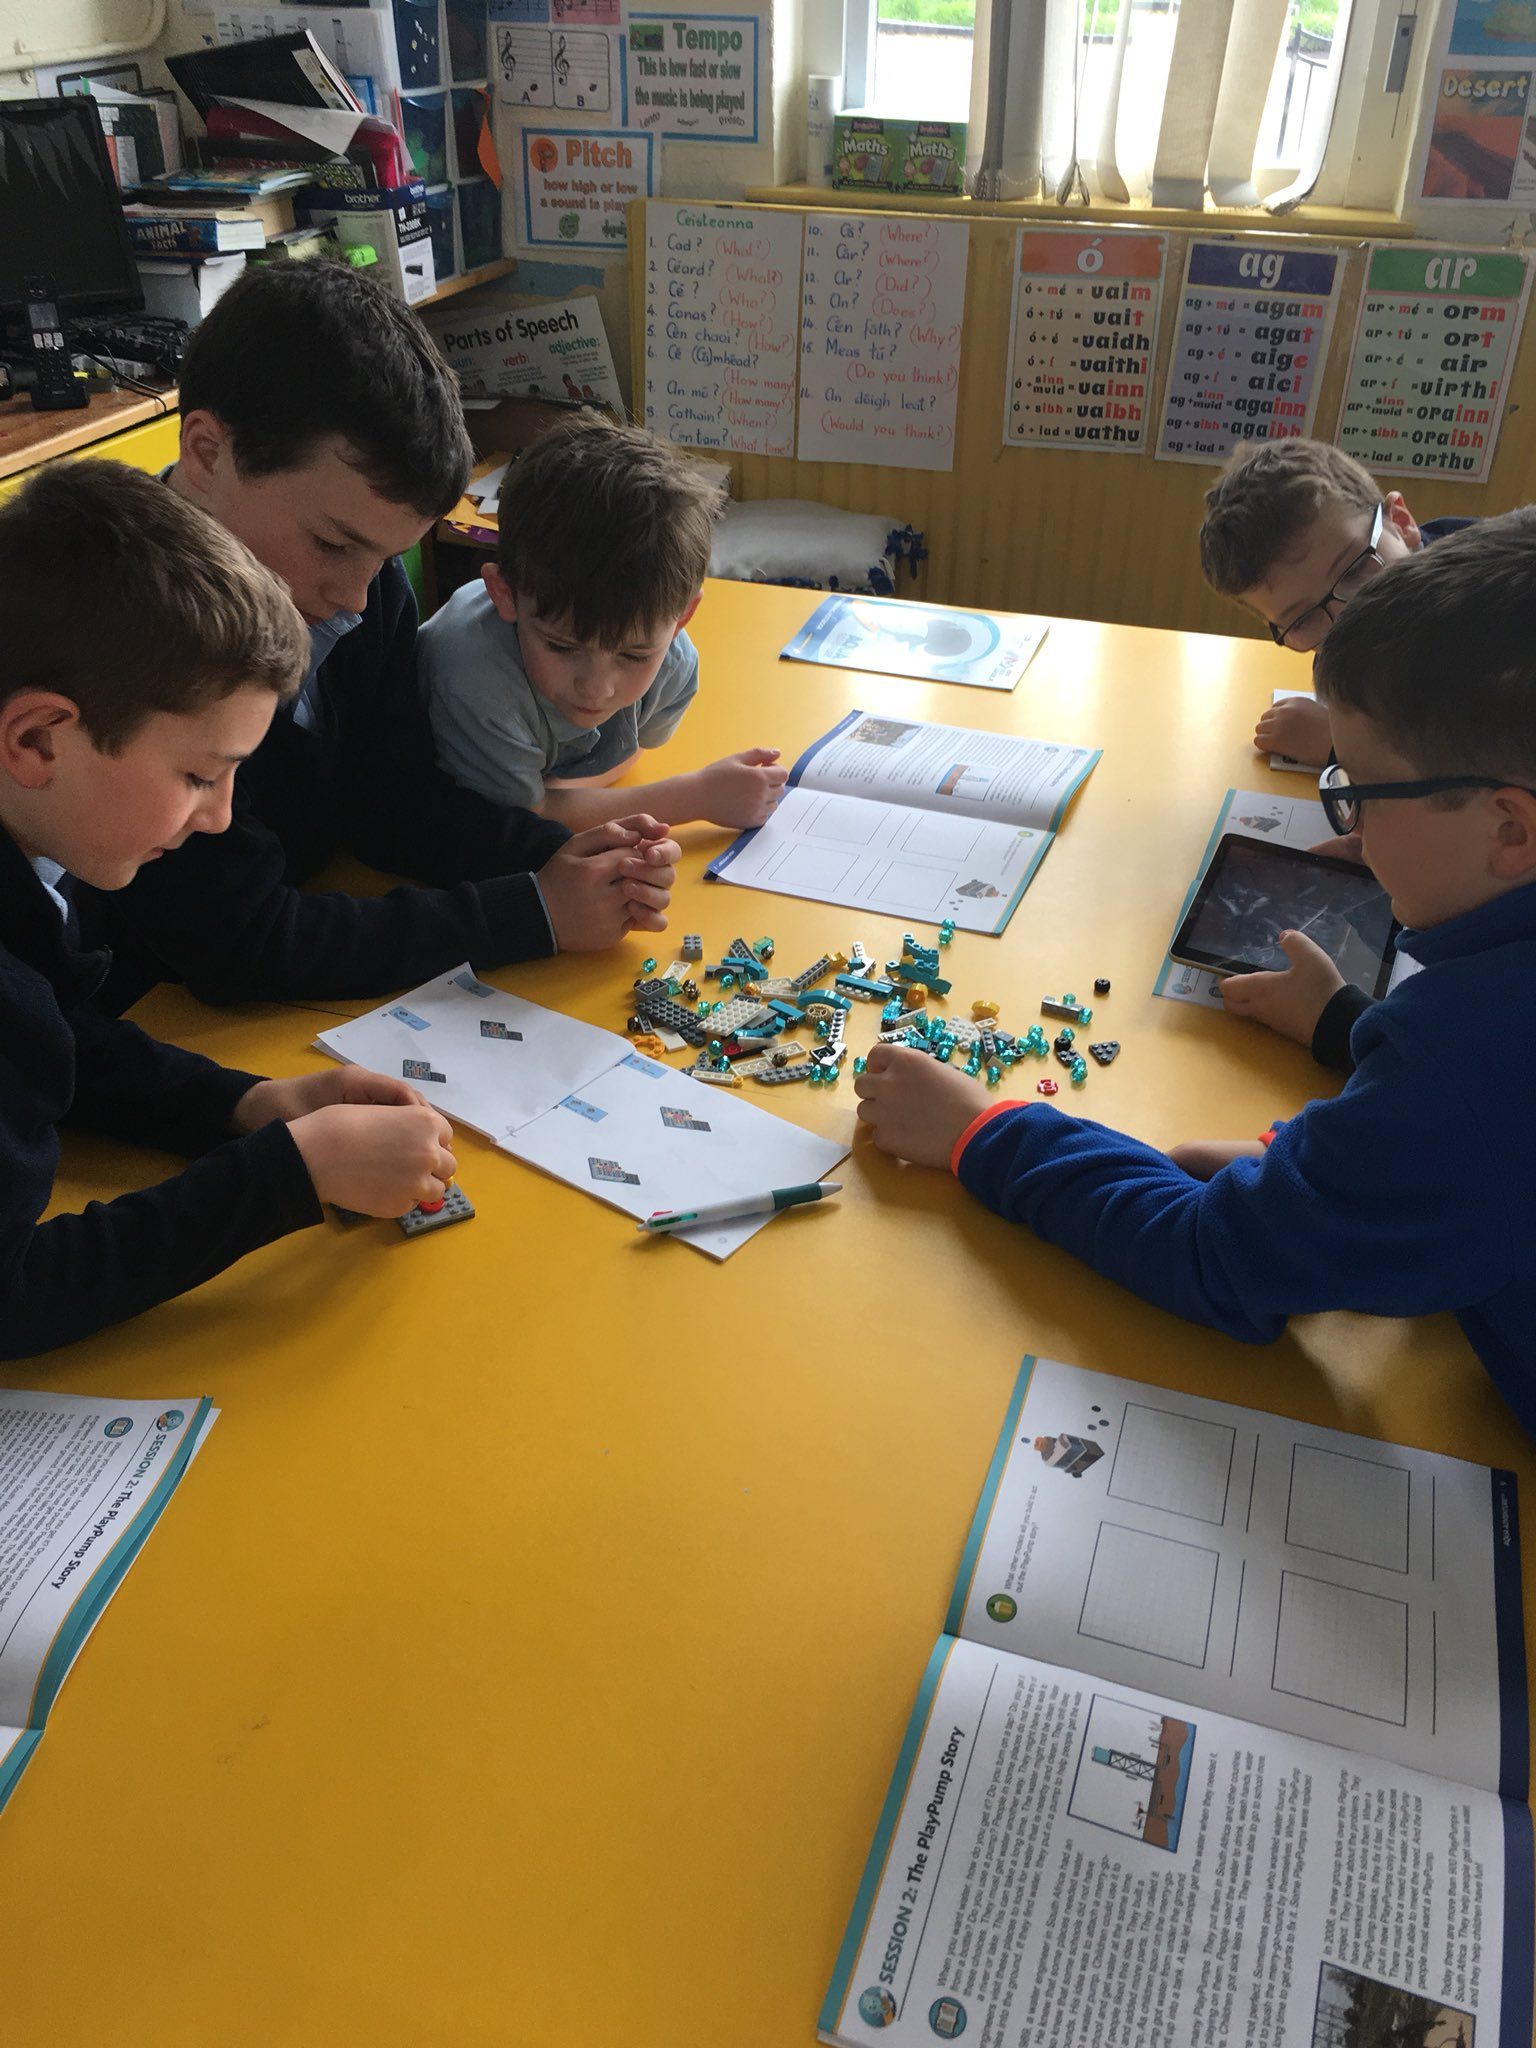 Cloghans Hill NS On Twitter We Are Starting Our Firstlegoleague Junior Challenge Today Its So Very Exciting Aqua Lego Learnit Ireland